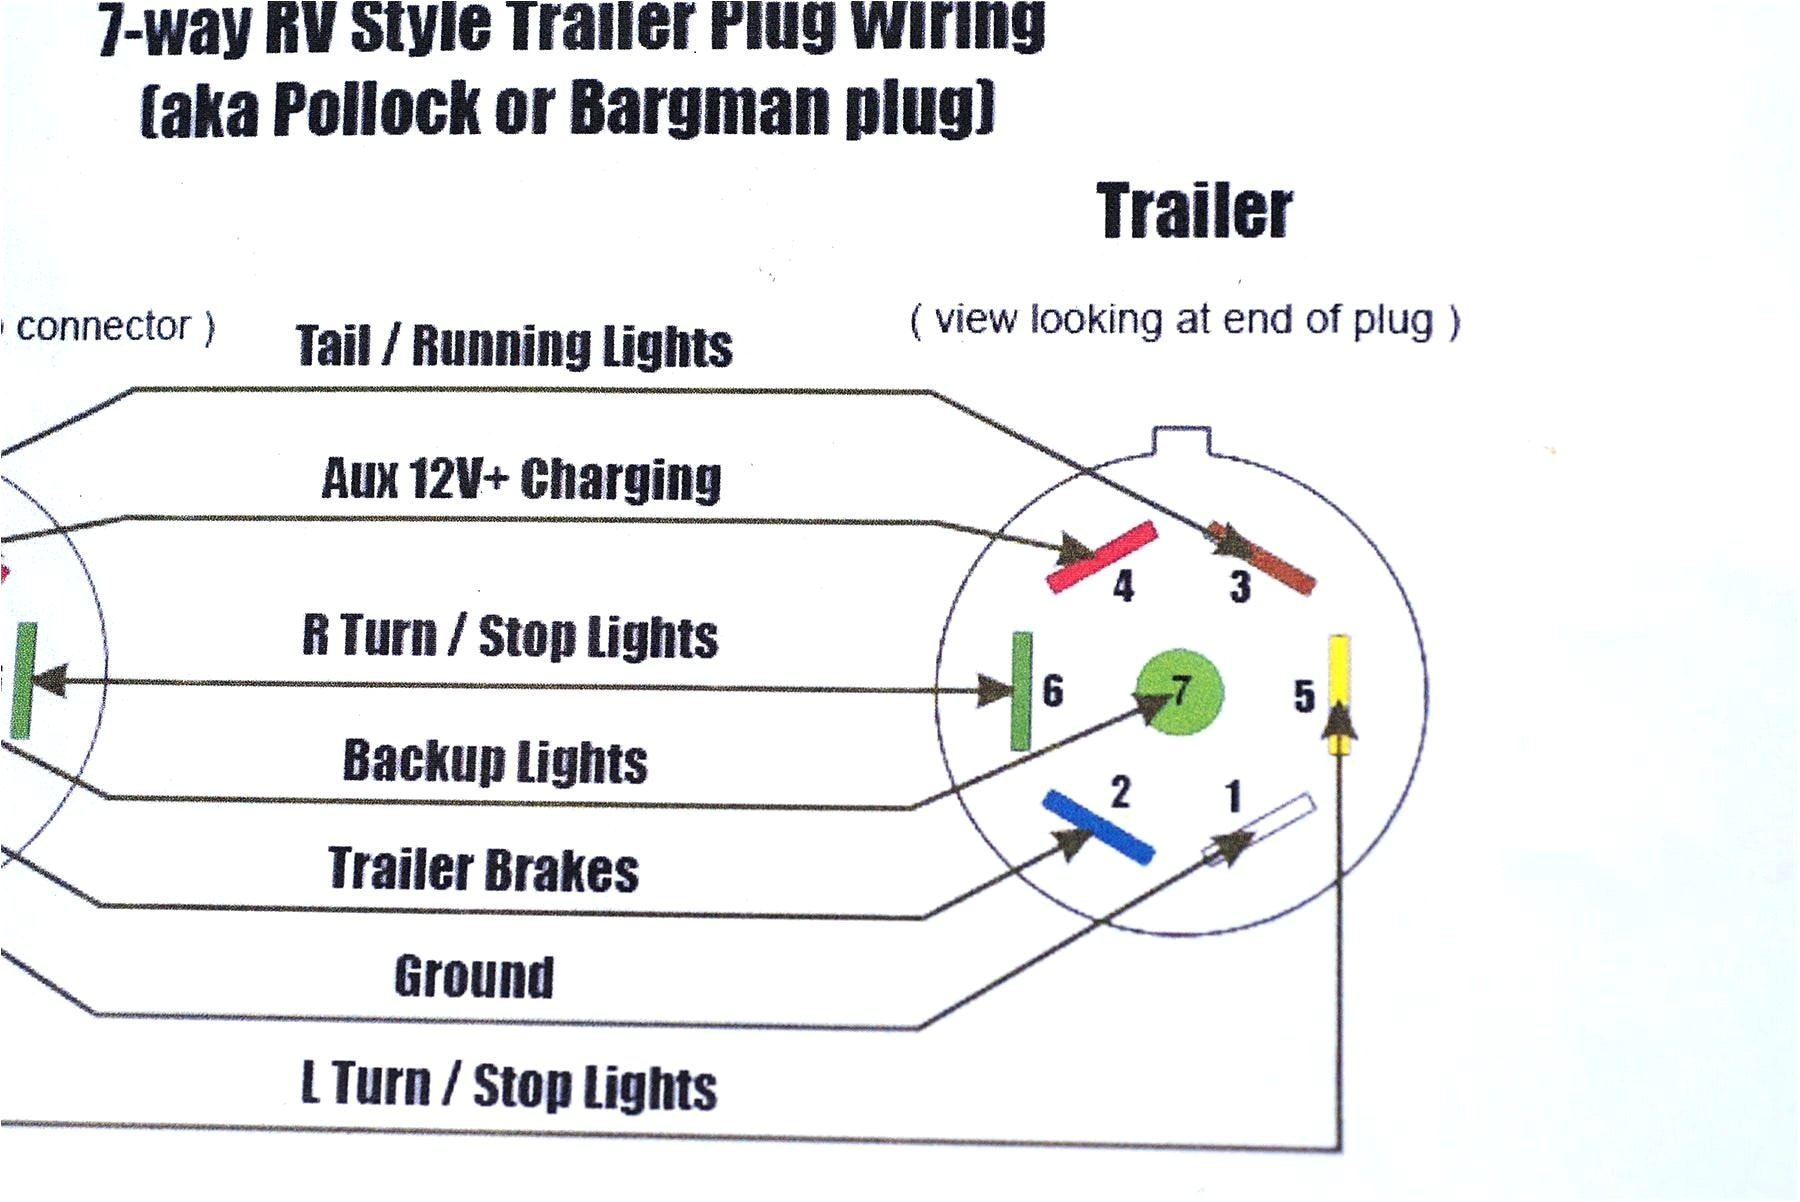 wiring diagram trailer connector fresh diagrams 7 pole 6 prong and pin of rv style plug 0 png